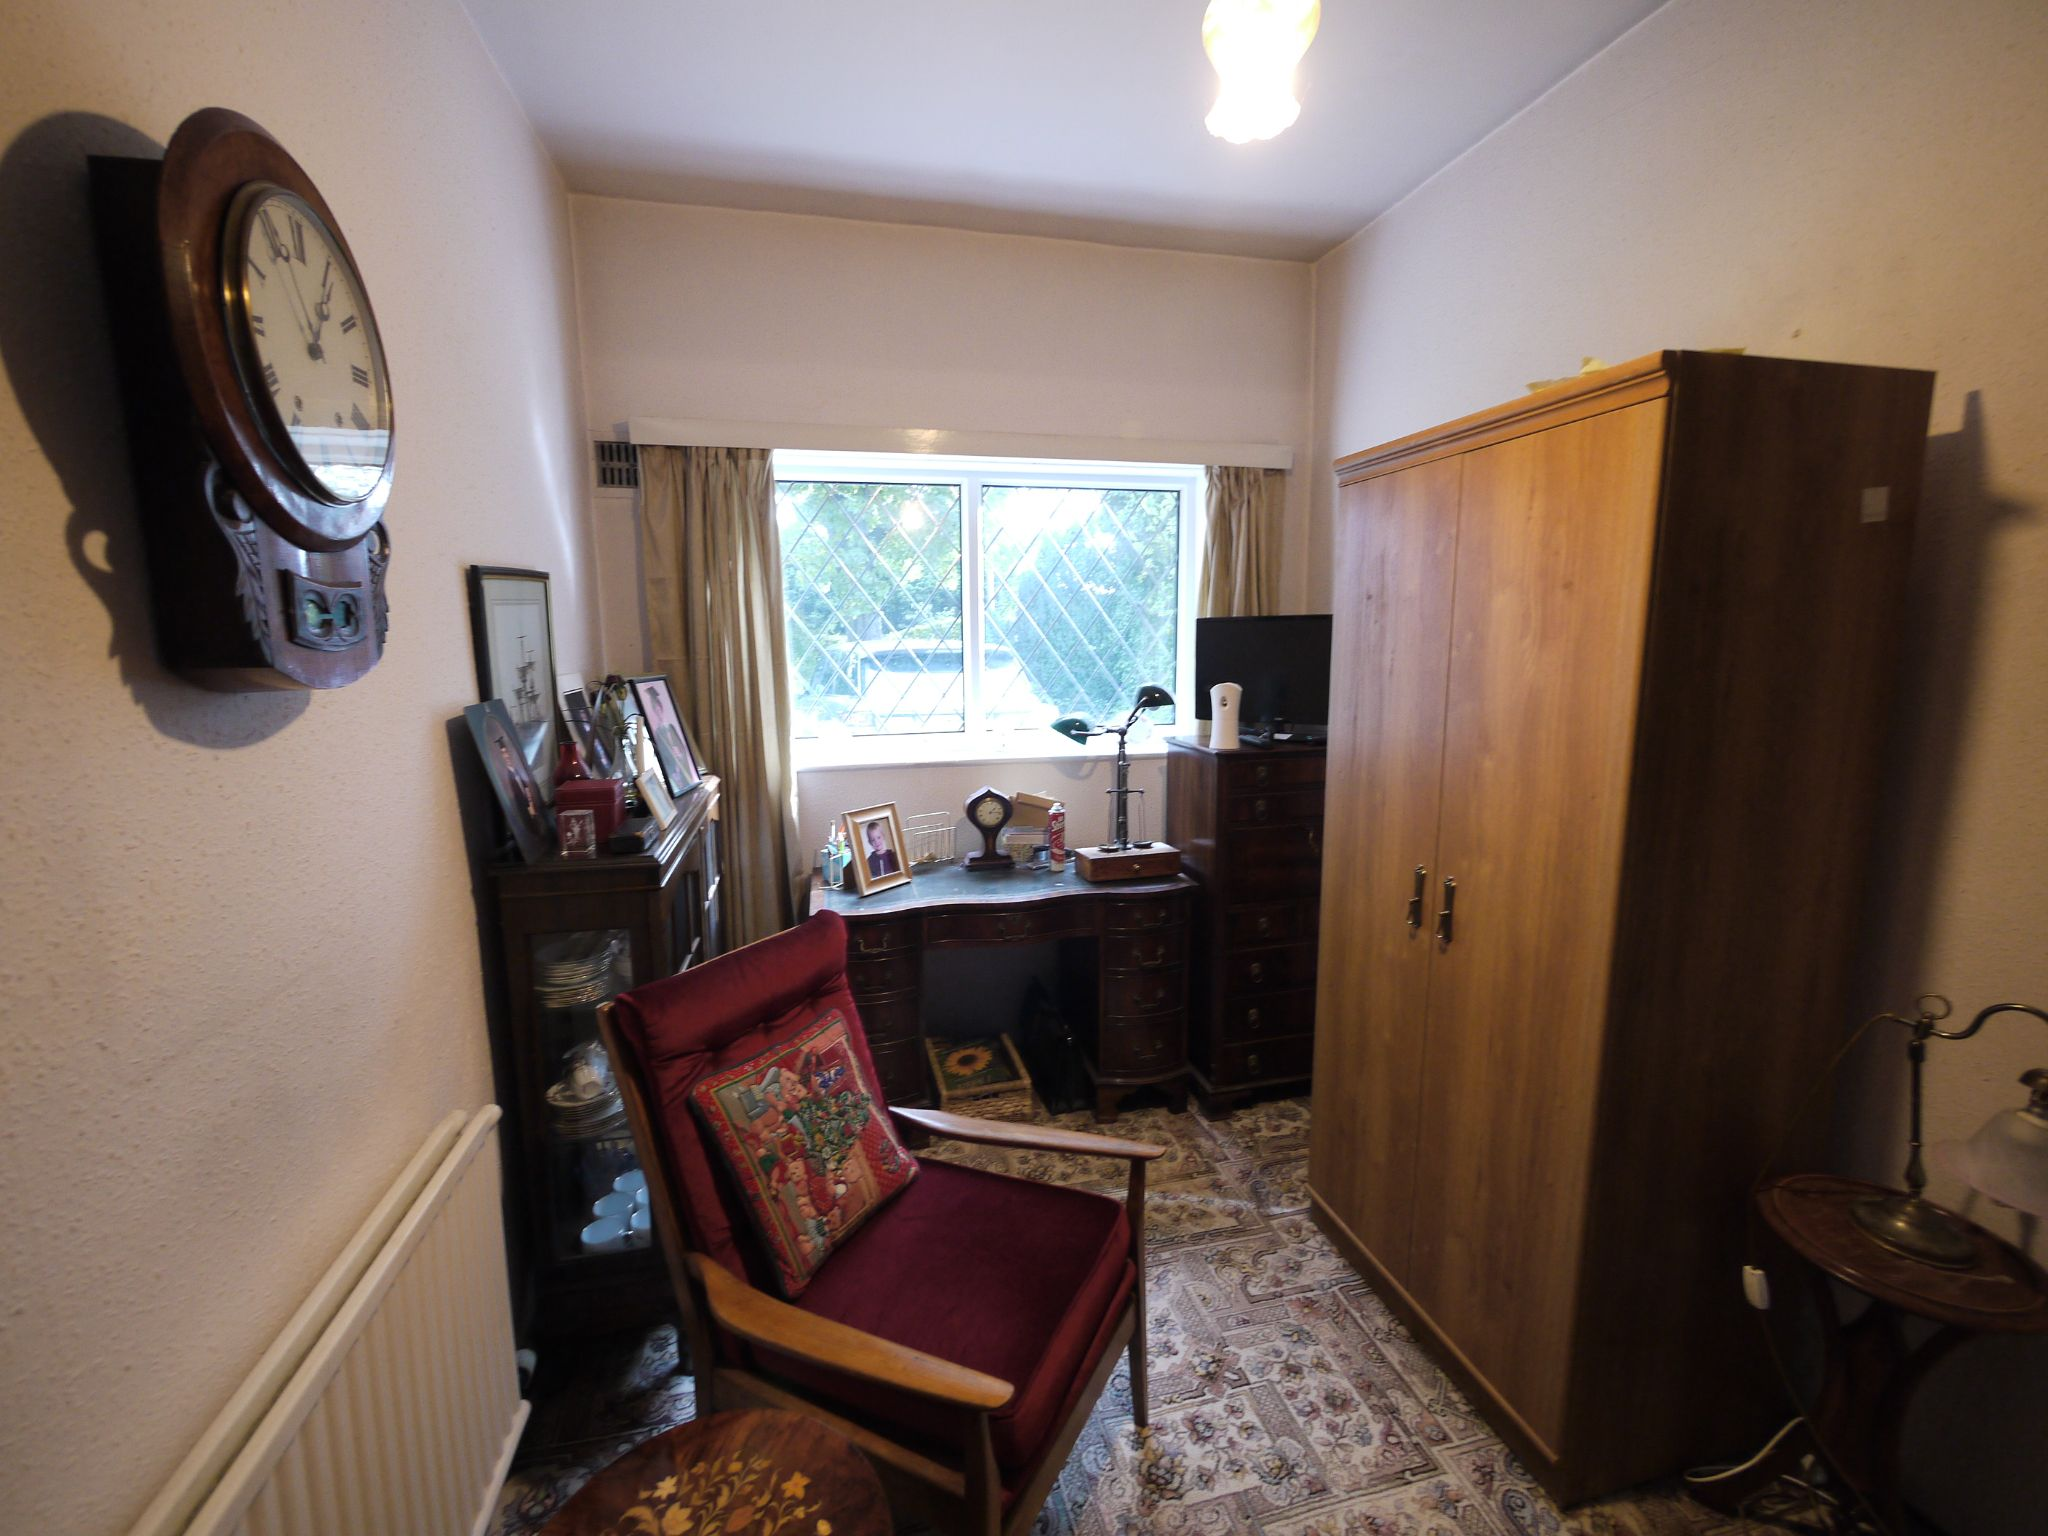 3 bedroom detached house SSTC in Brighouse - Study.